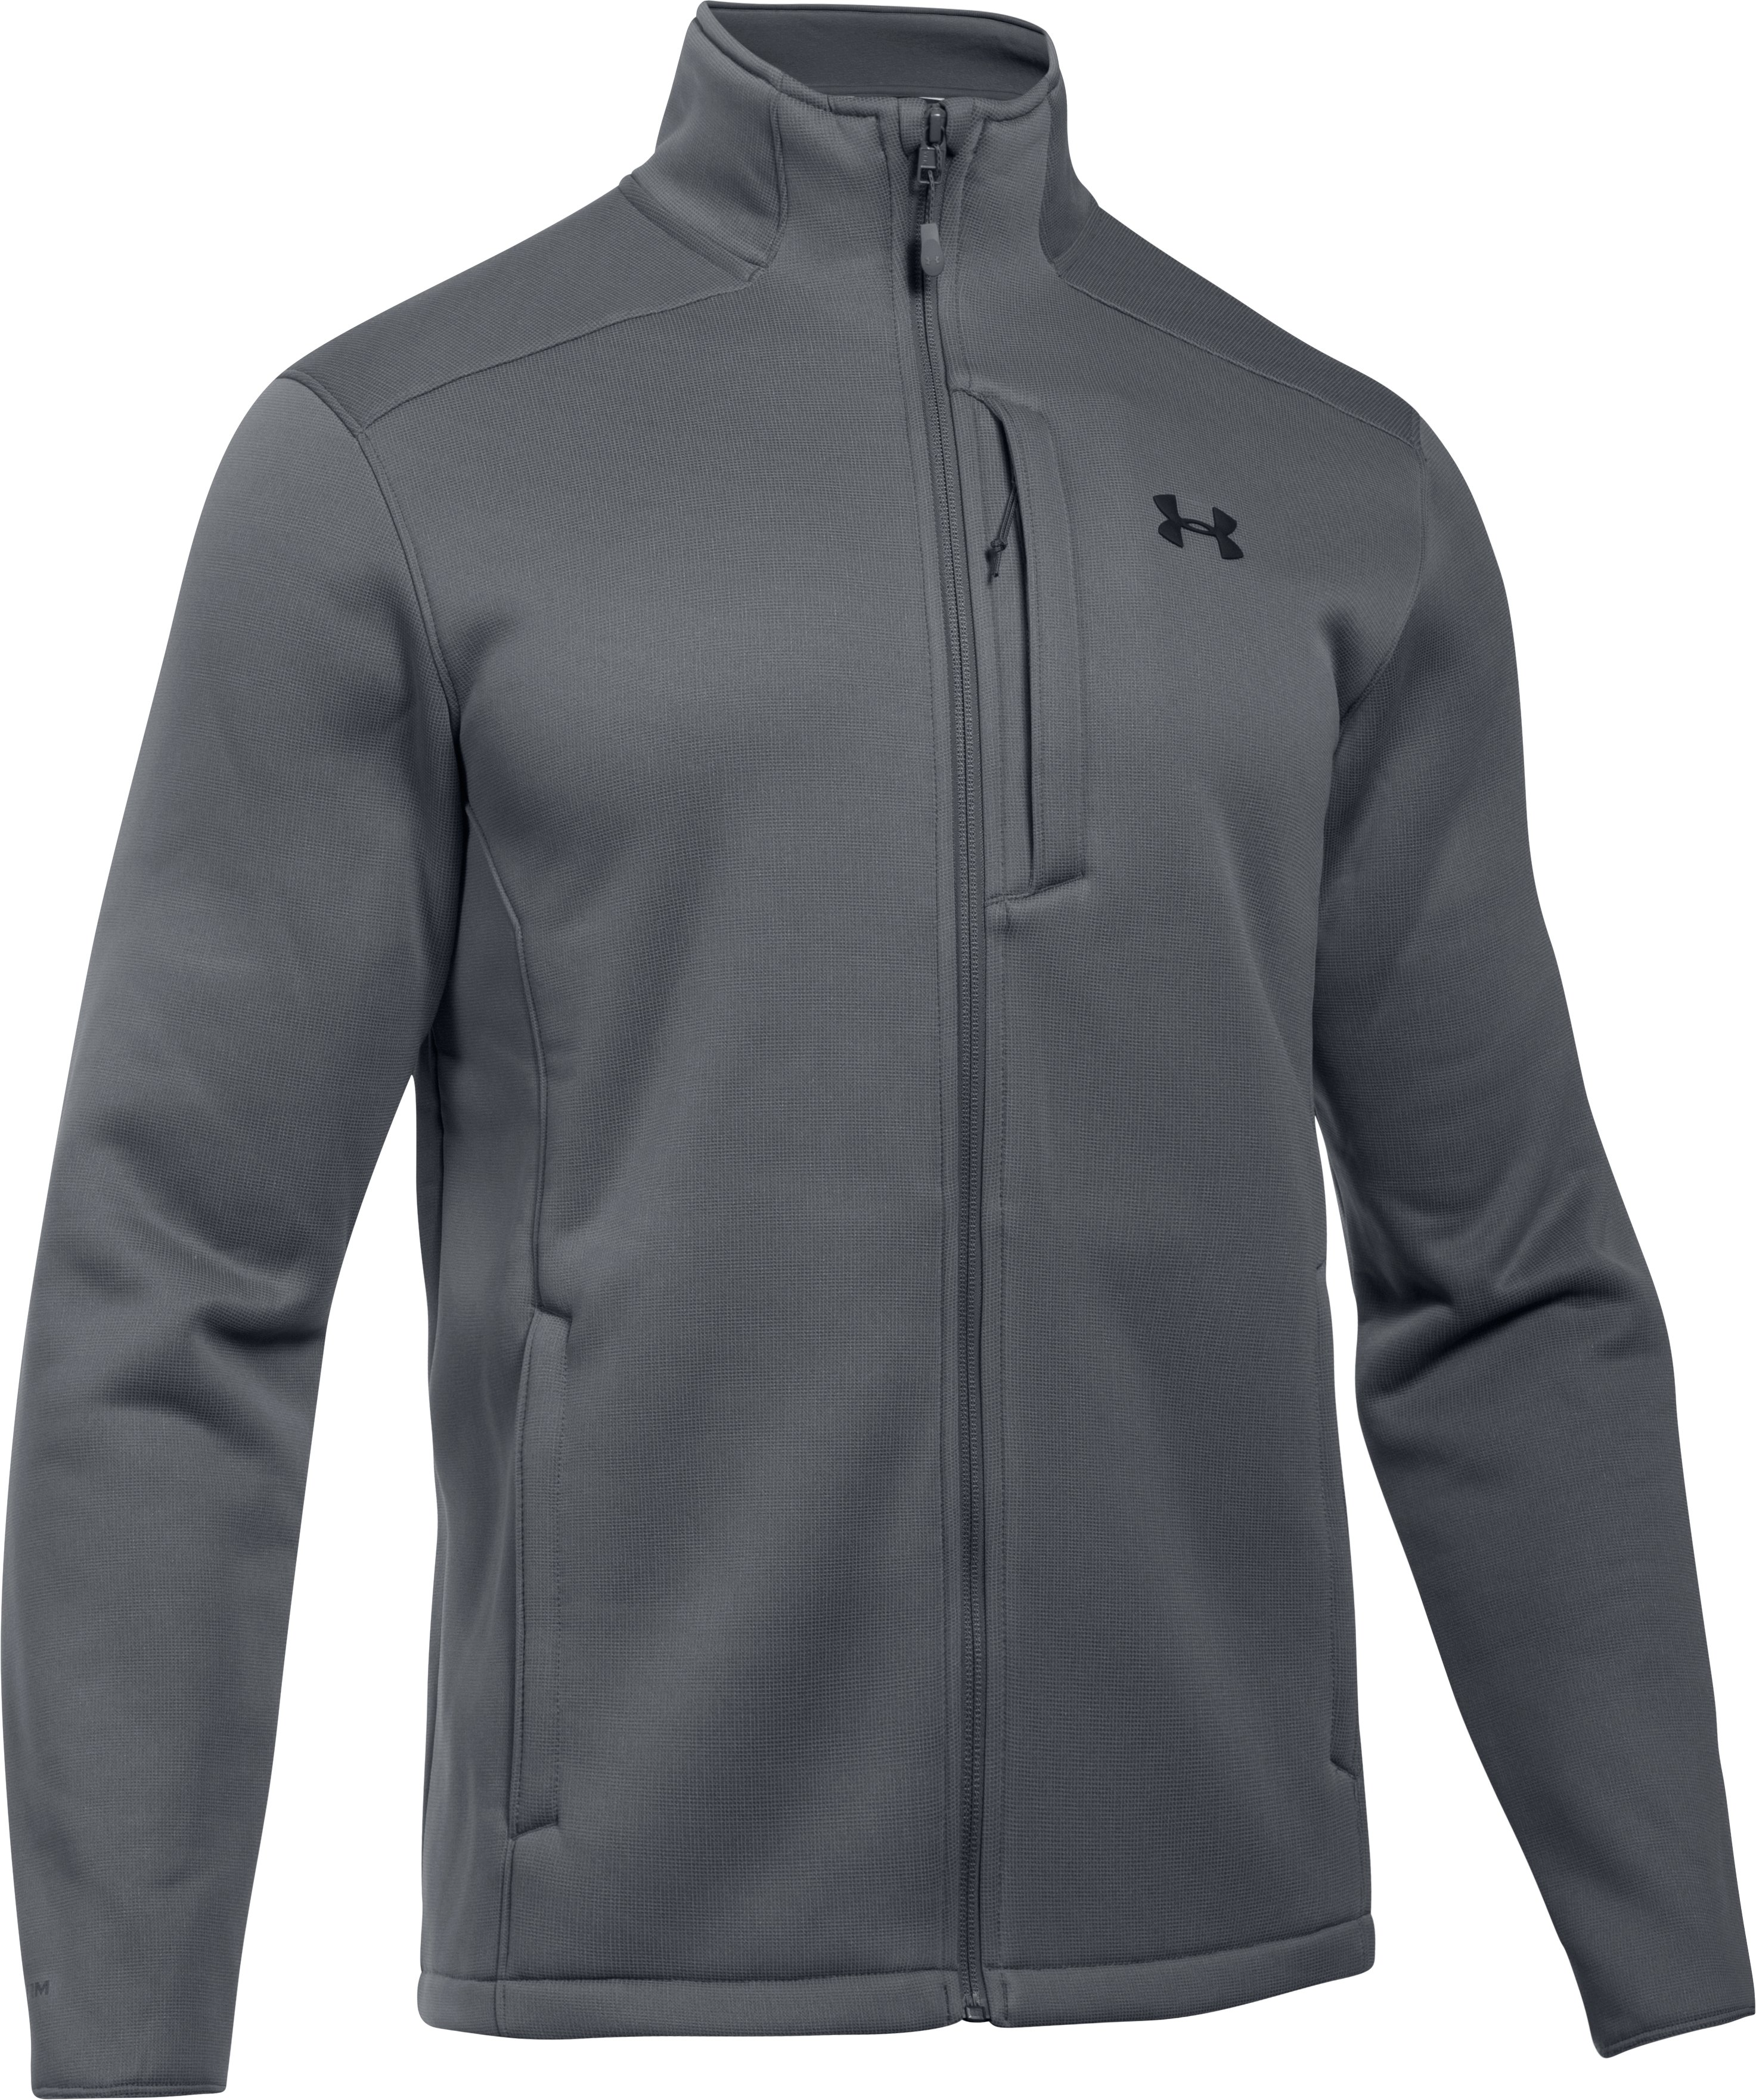 Men's UA Storm Extreme ColdGear® Jacket, RHINO GRAY, undefined